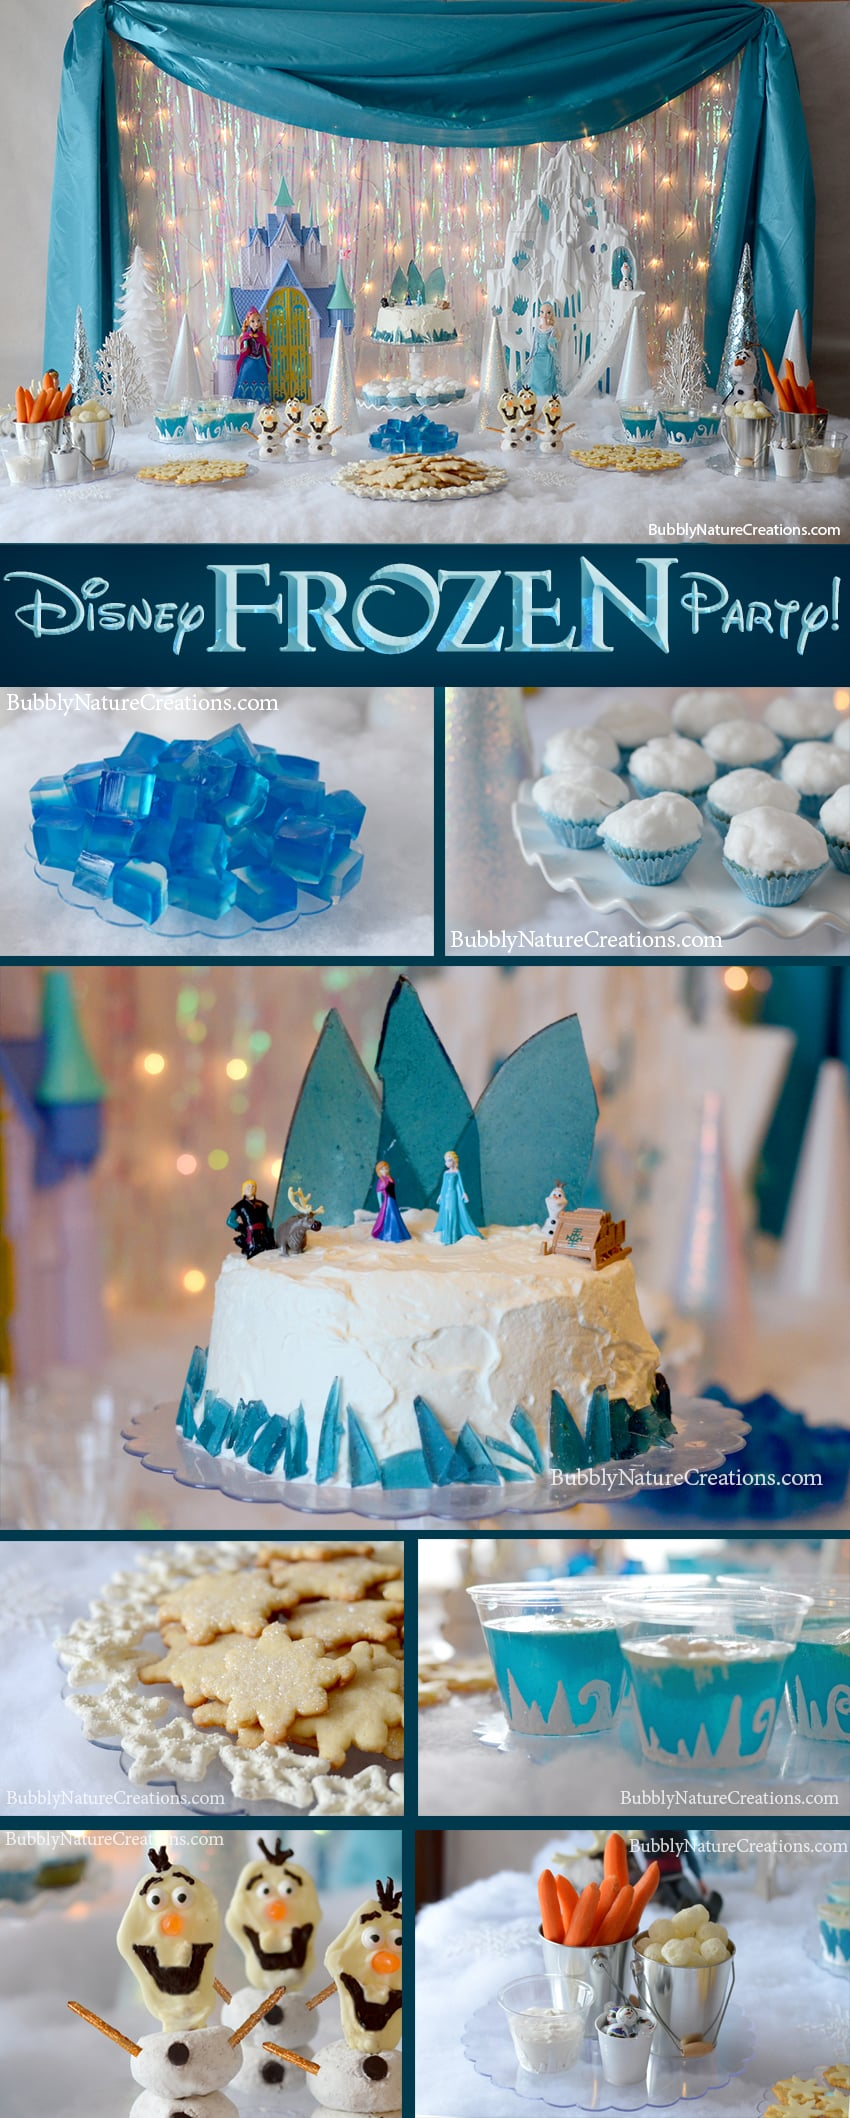 This Disney Frozen Party theme has everything from cake to games with awesome decorating tips and ideas! My little ones were so excited to see this fun filled party with their favorite Frozen characters. #FrozenParty #DisneyFrozenParty #GirlBirthdayPartyIdeas #PartyIdeas